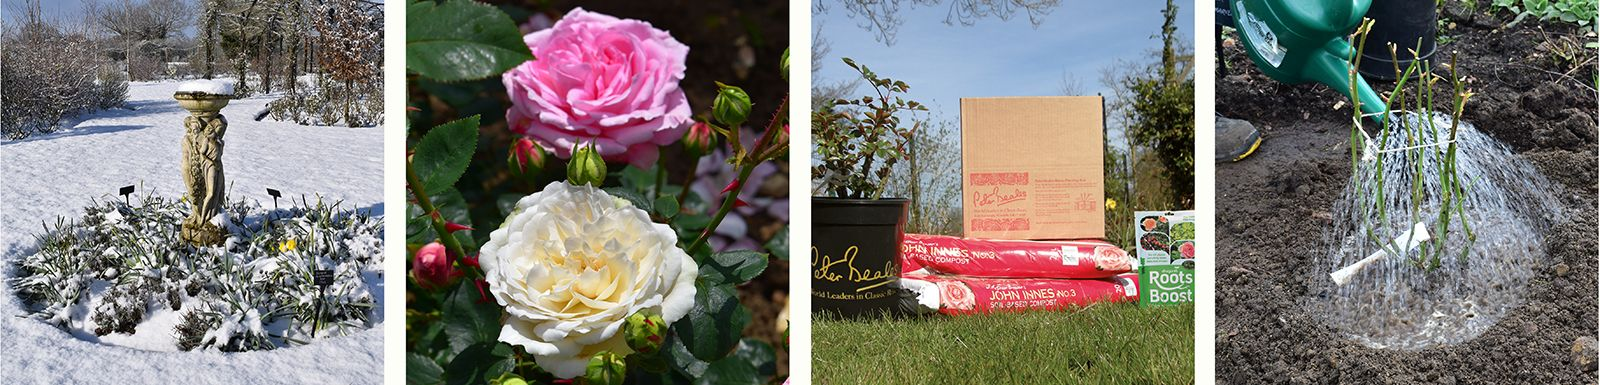 Planting roses in snow    |    Rose sports    |    Rose replant boxes    |    Water new roses well